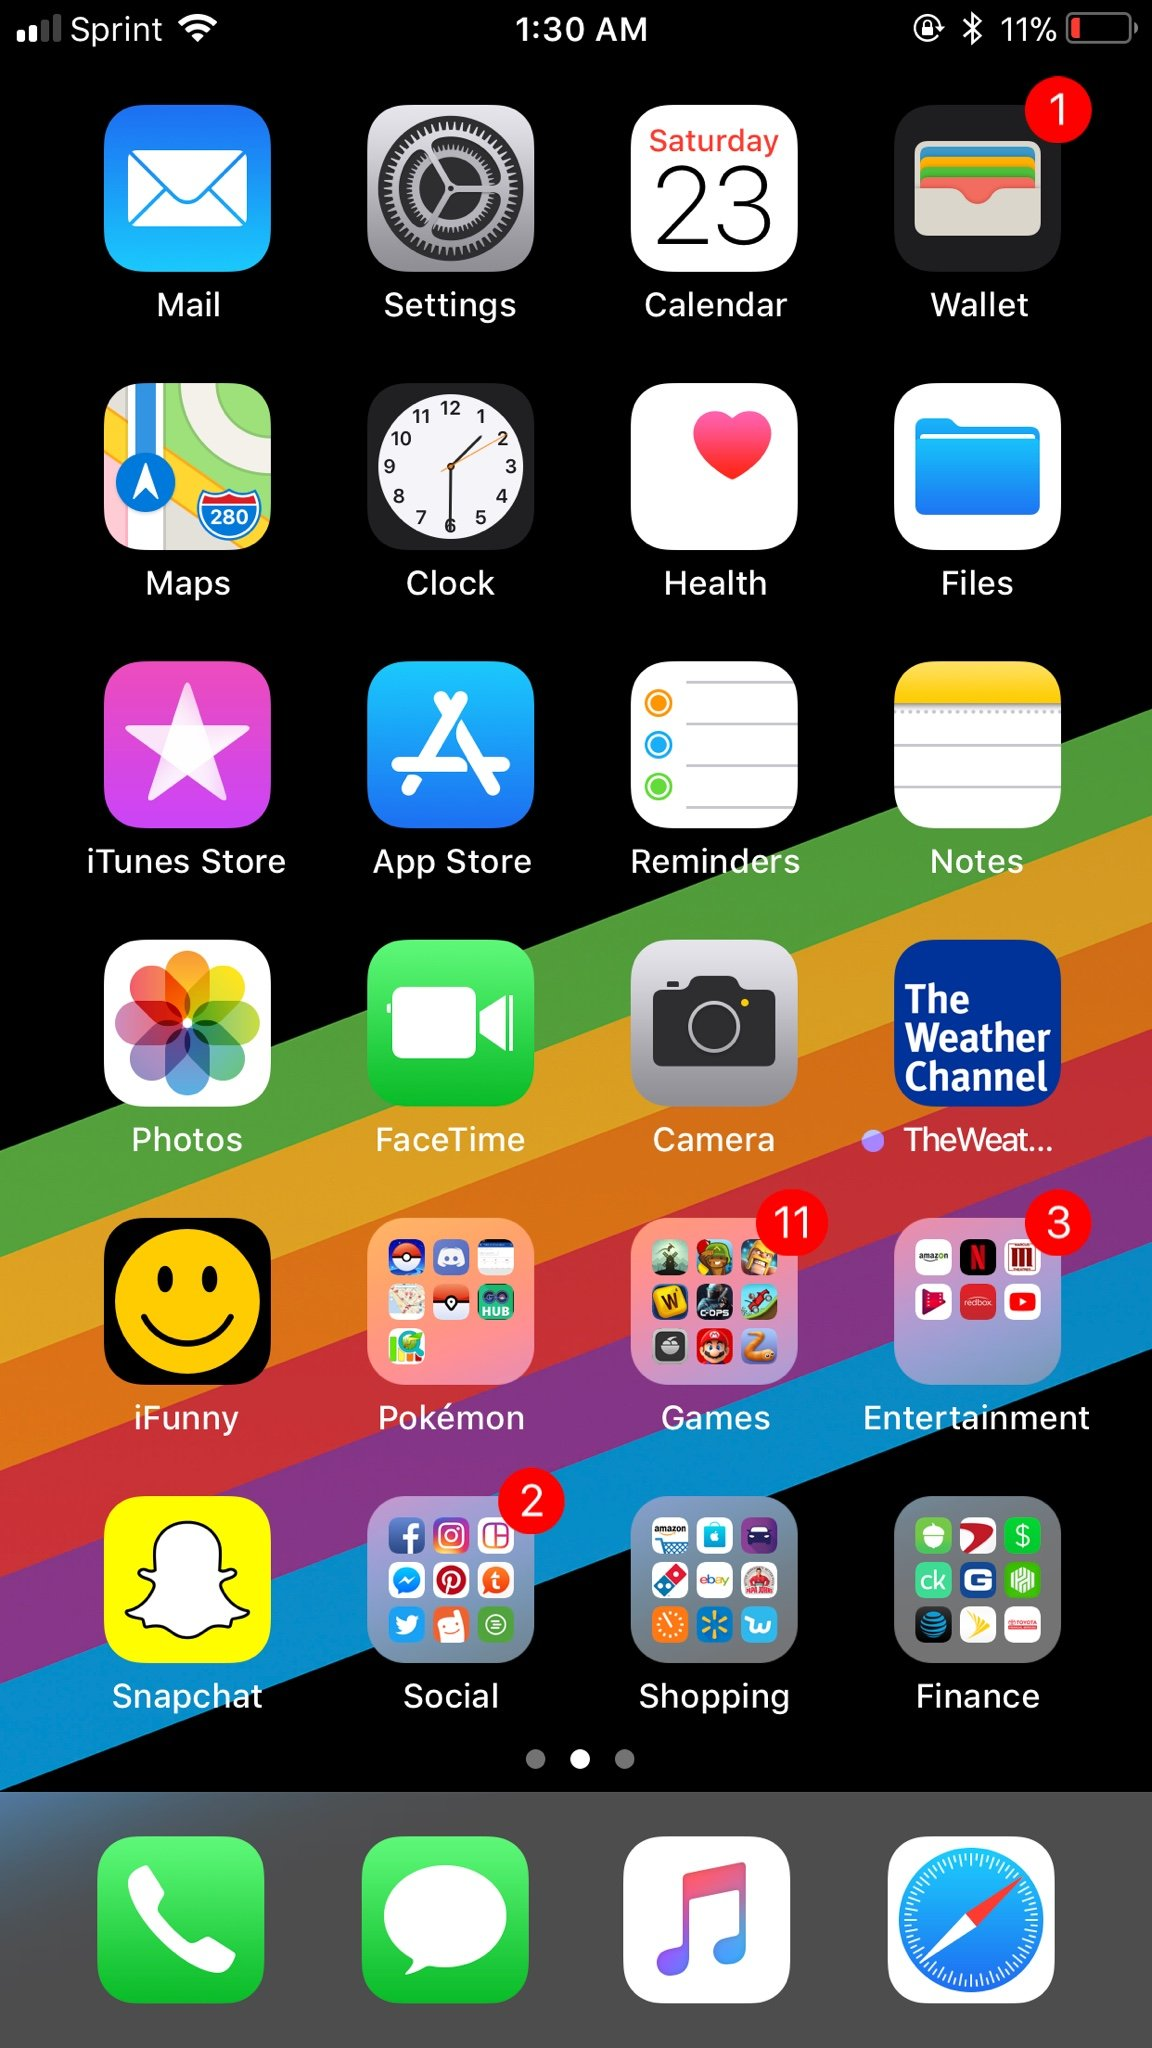 iPhone 8 Plus | Show Us Your New Home Screen (After Setup!)